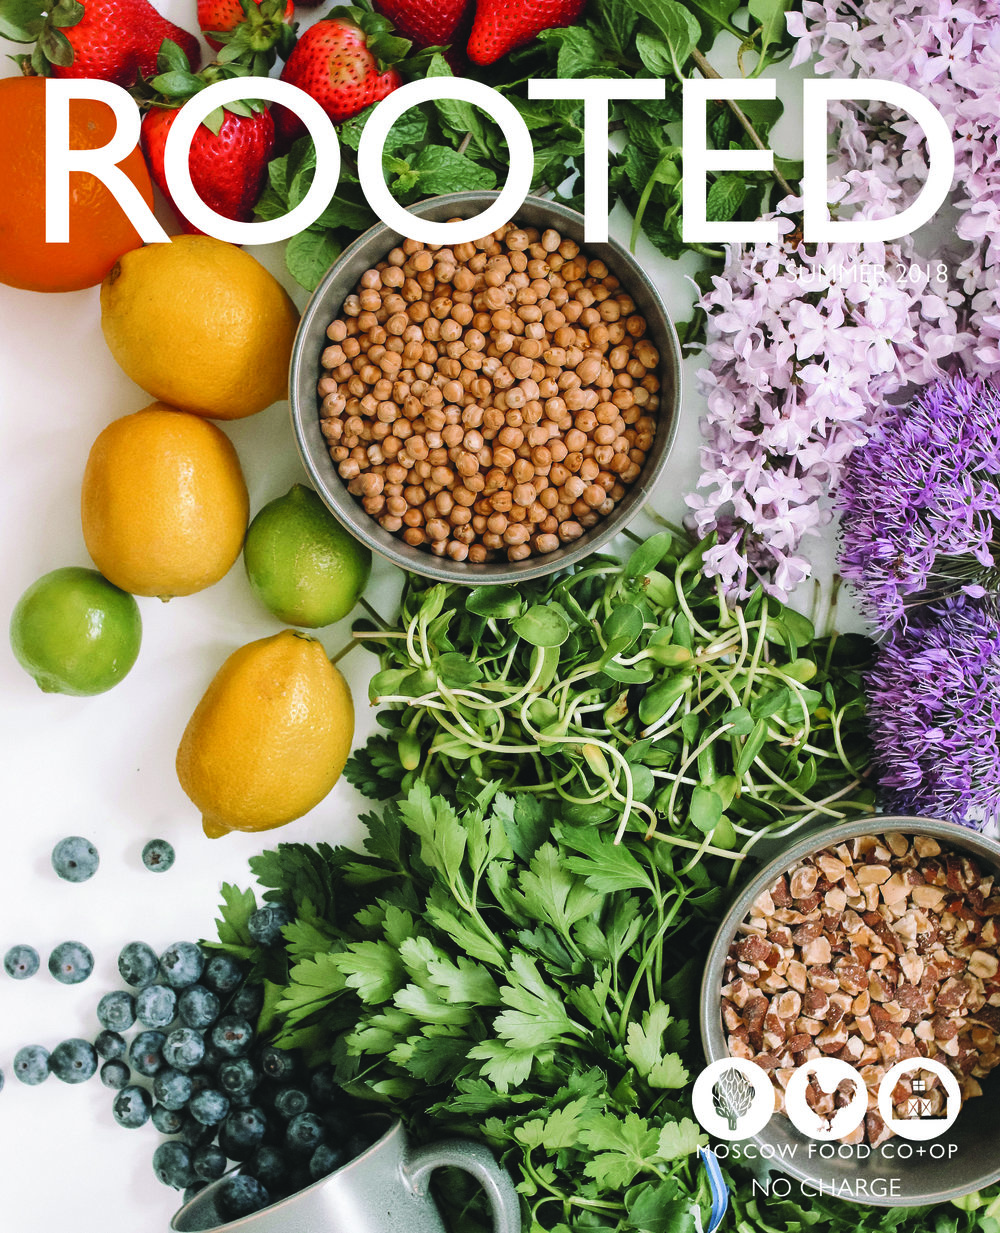 Read the Summer 2018 issue online now -